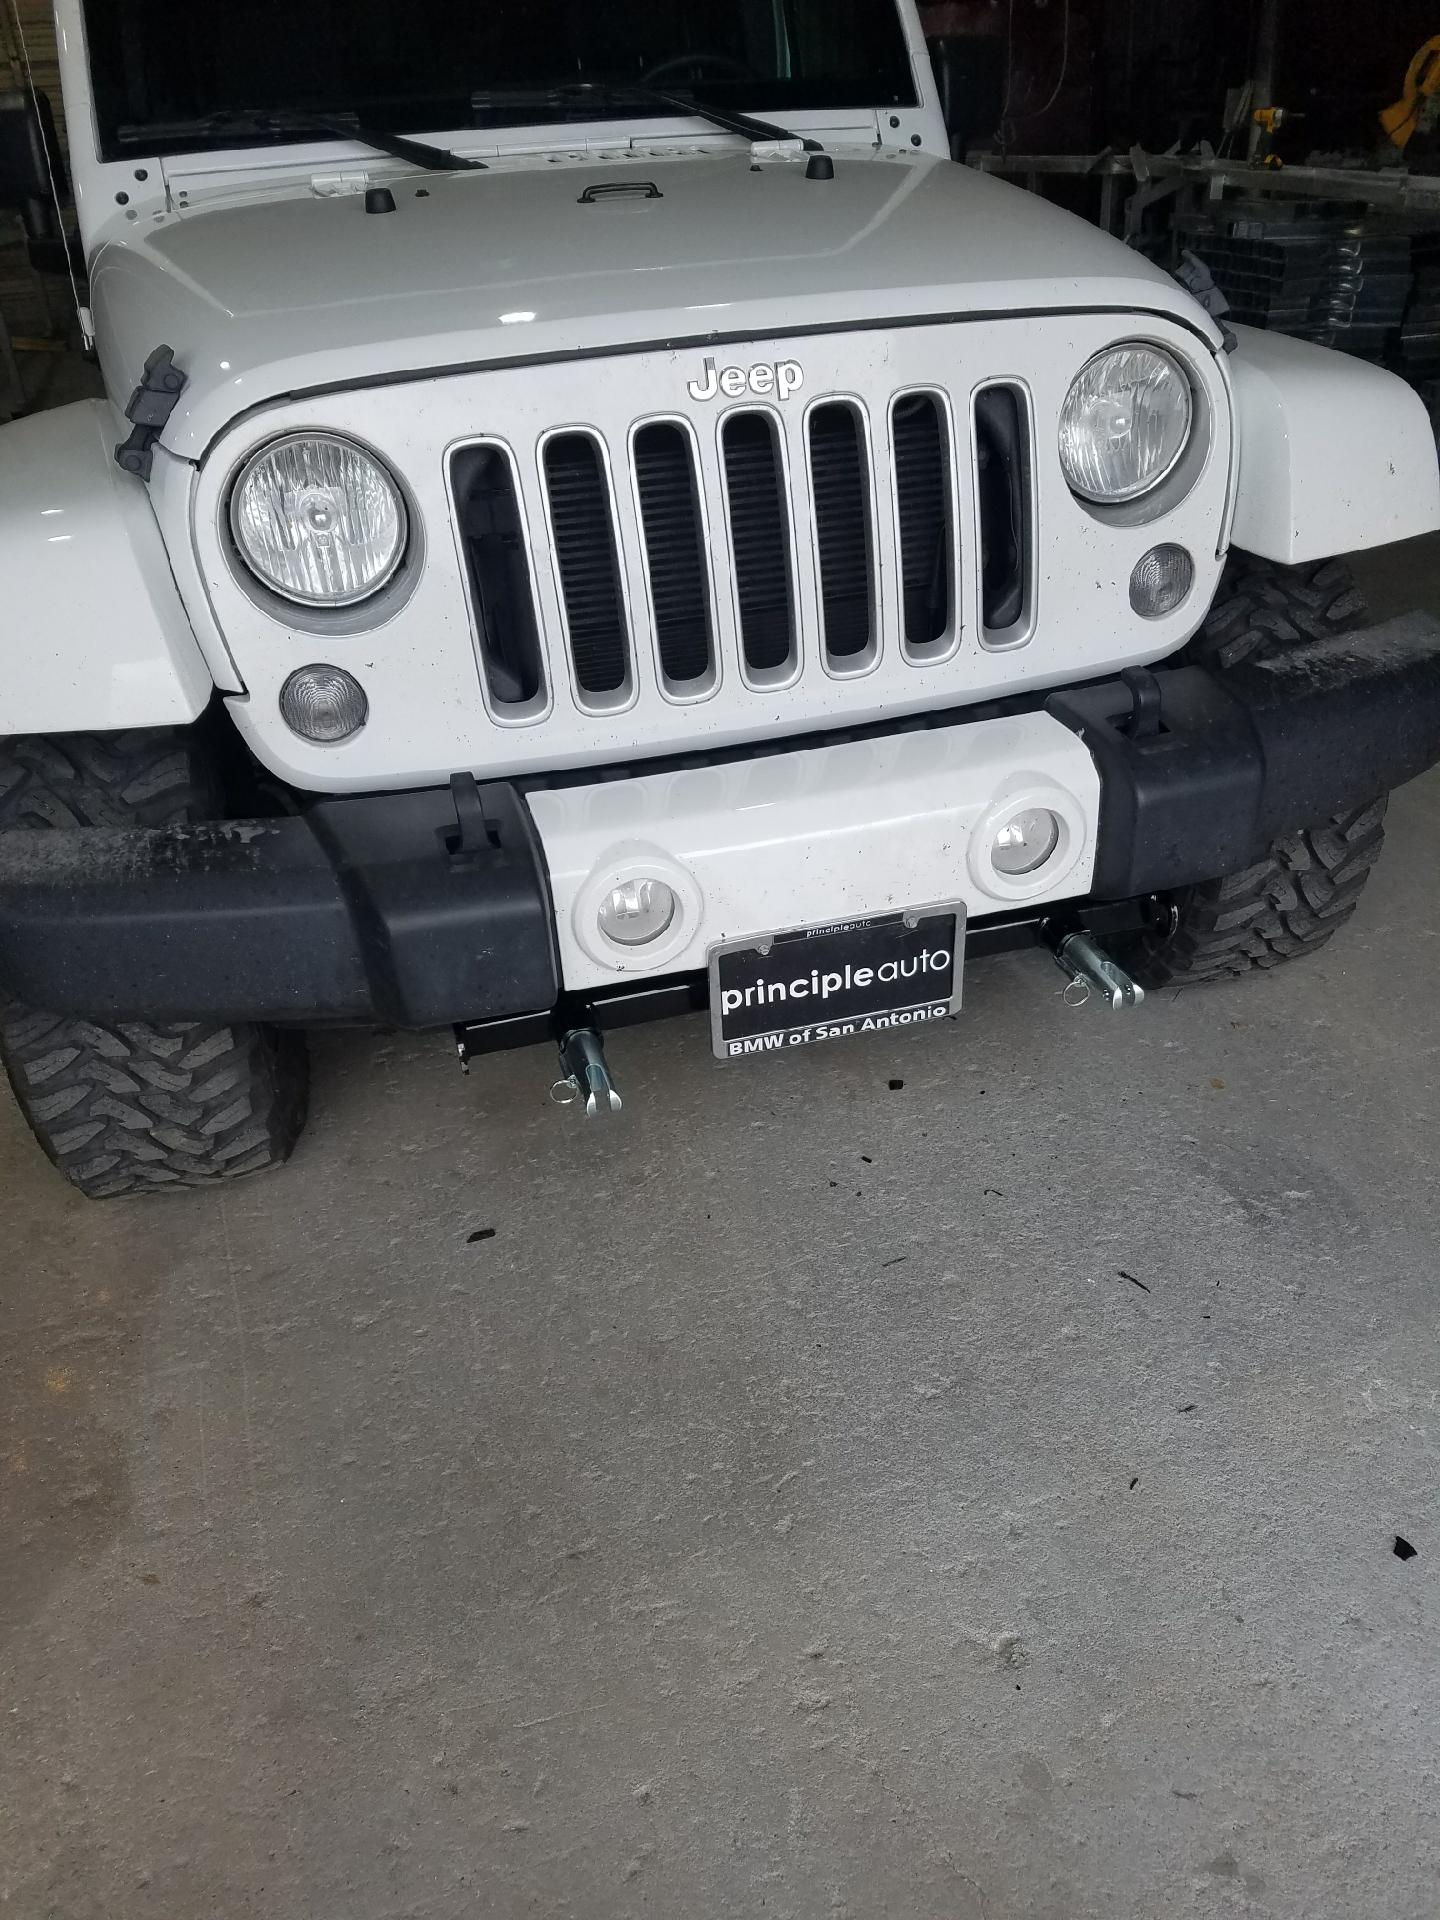 Jeep hook up for an RV.